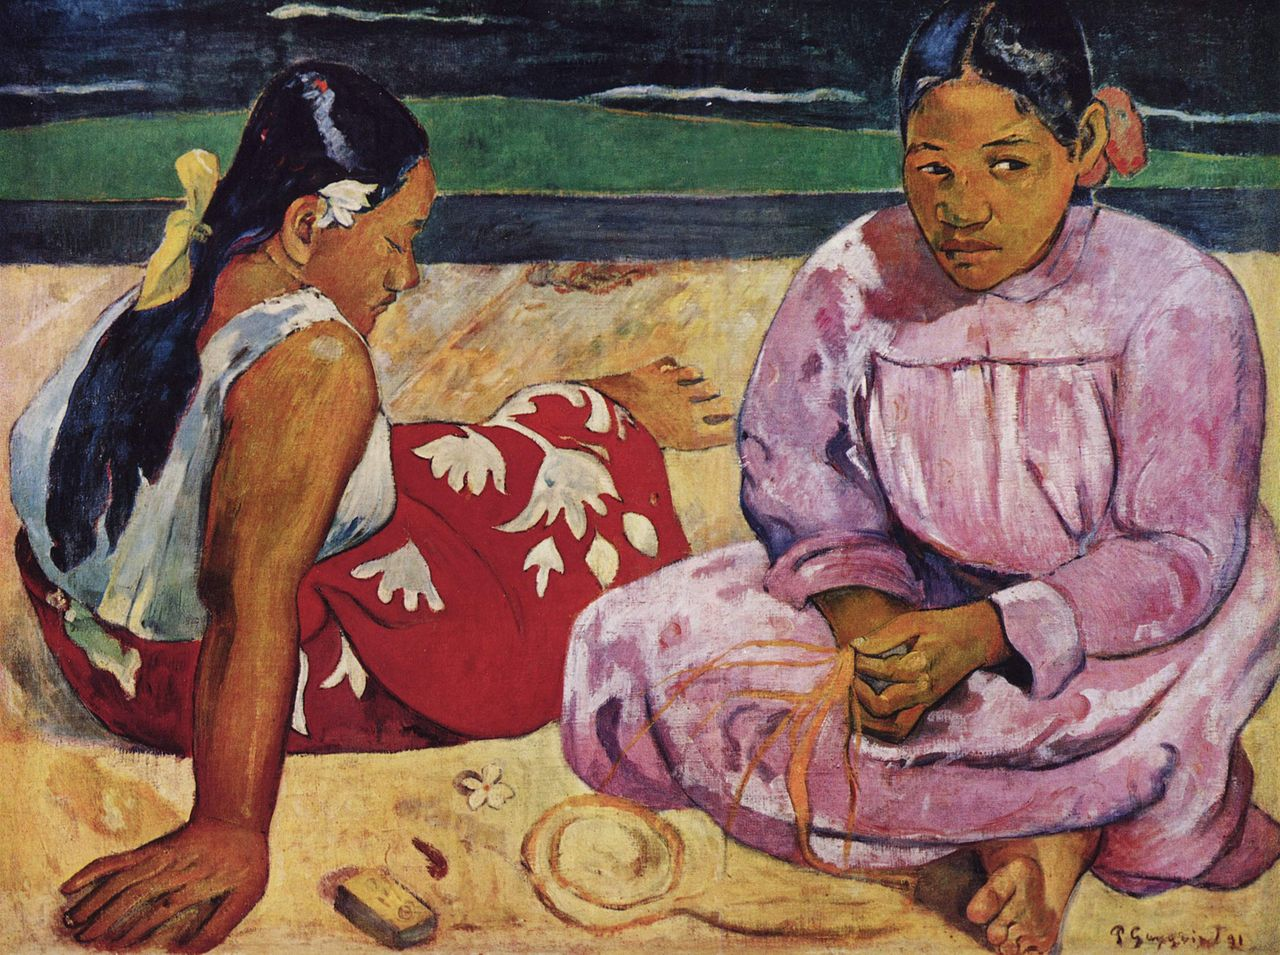 Le 7 juin 1848,  naissait Paul Gauguin.